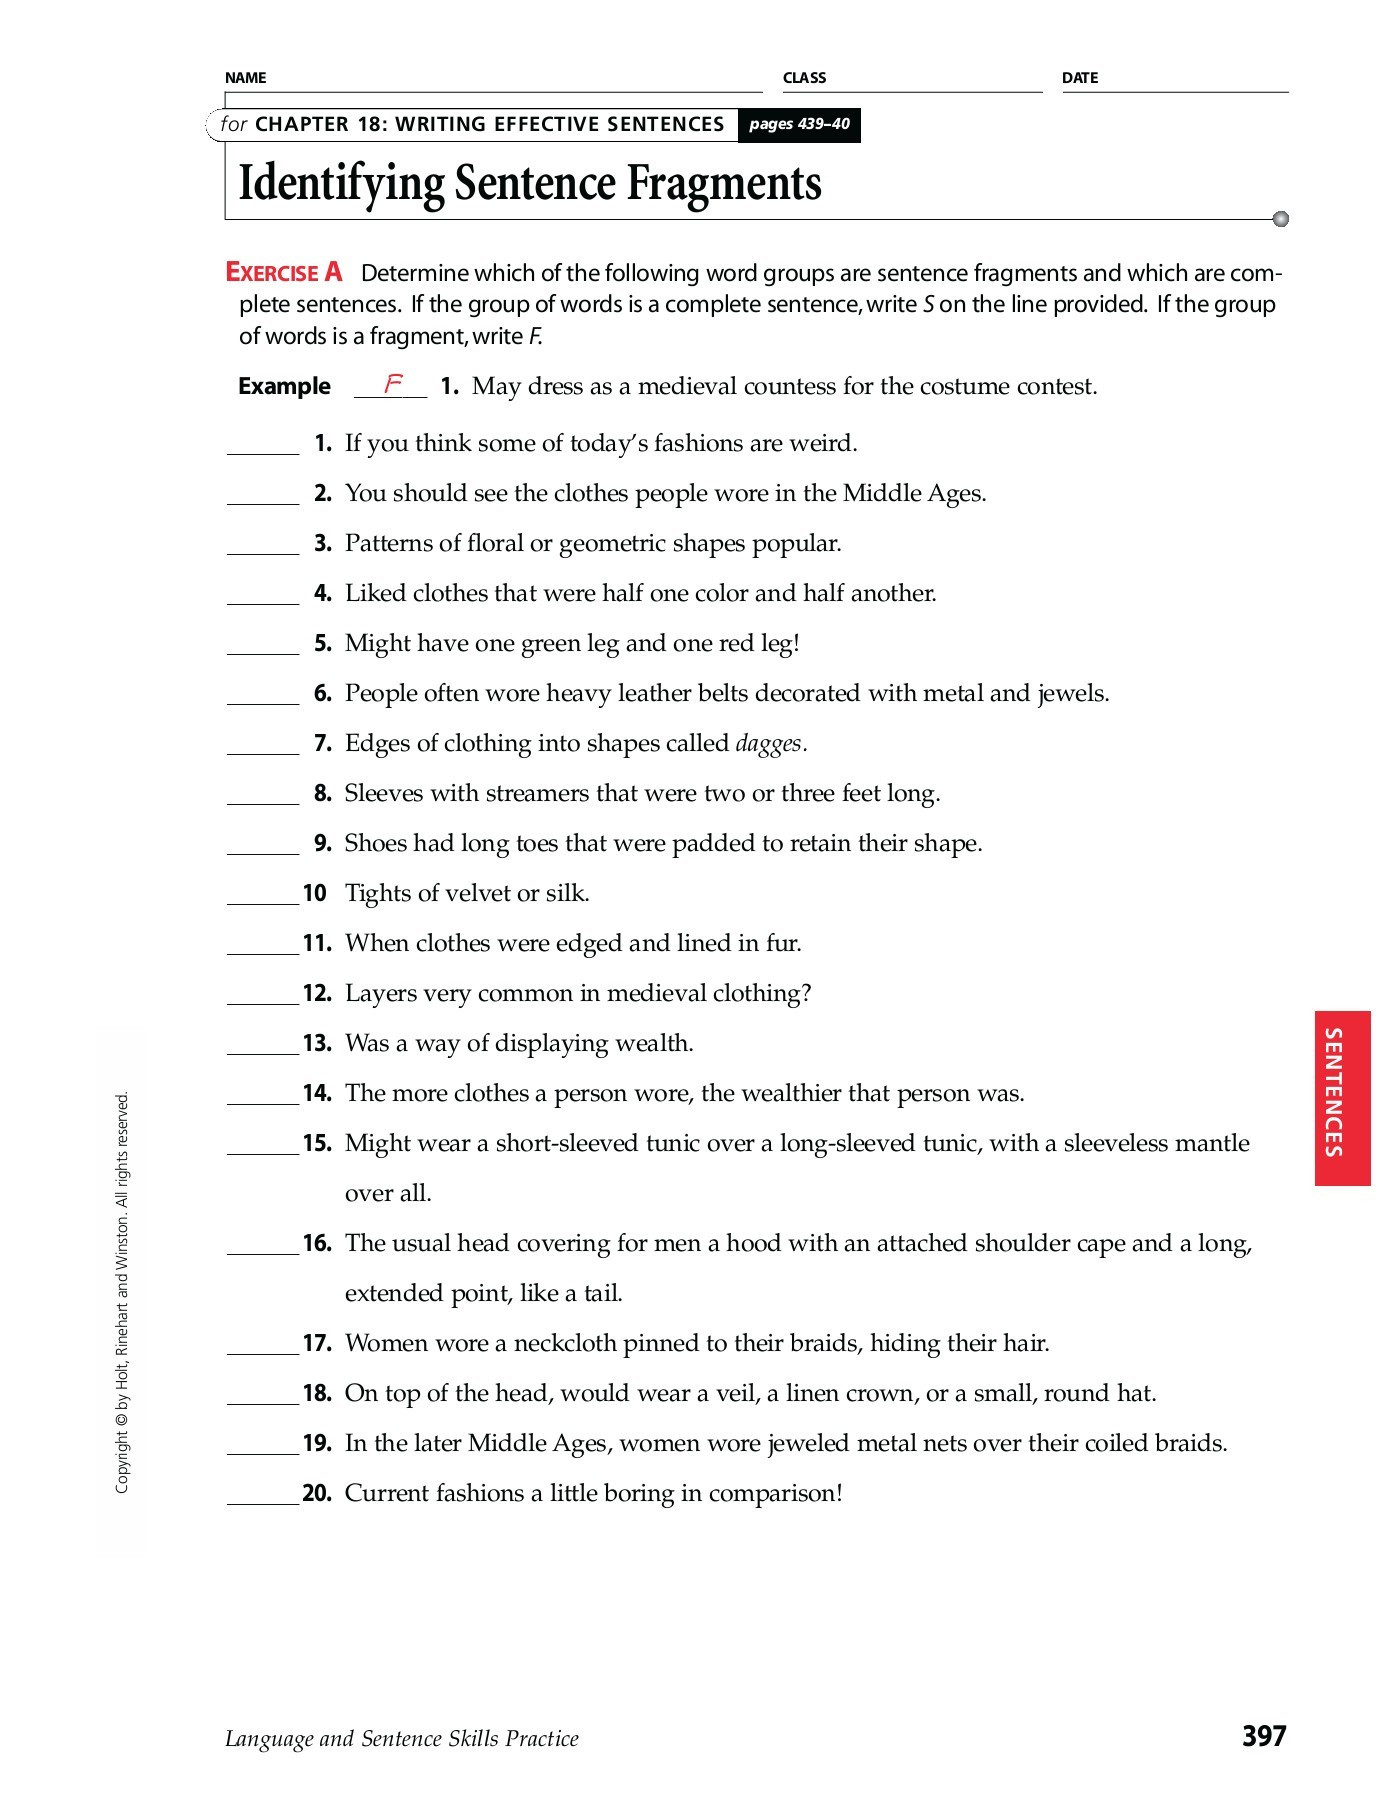 Complete Sentence Worksheets 4th Grade Chapter 18 Writing Effective Sentences Identifying